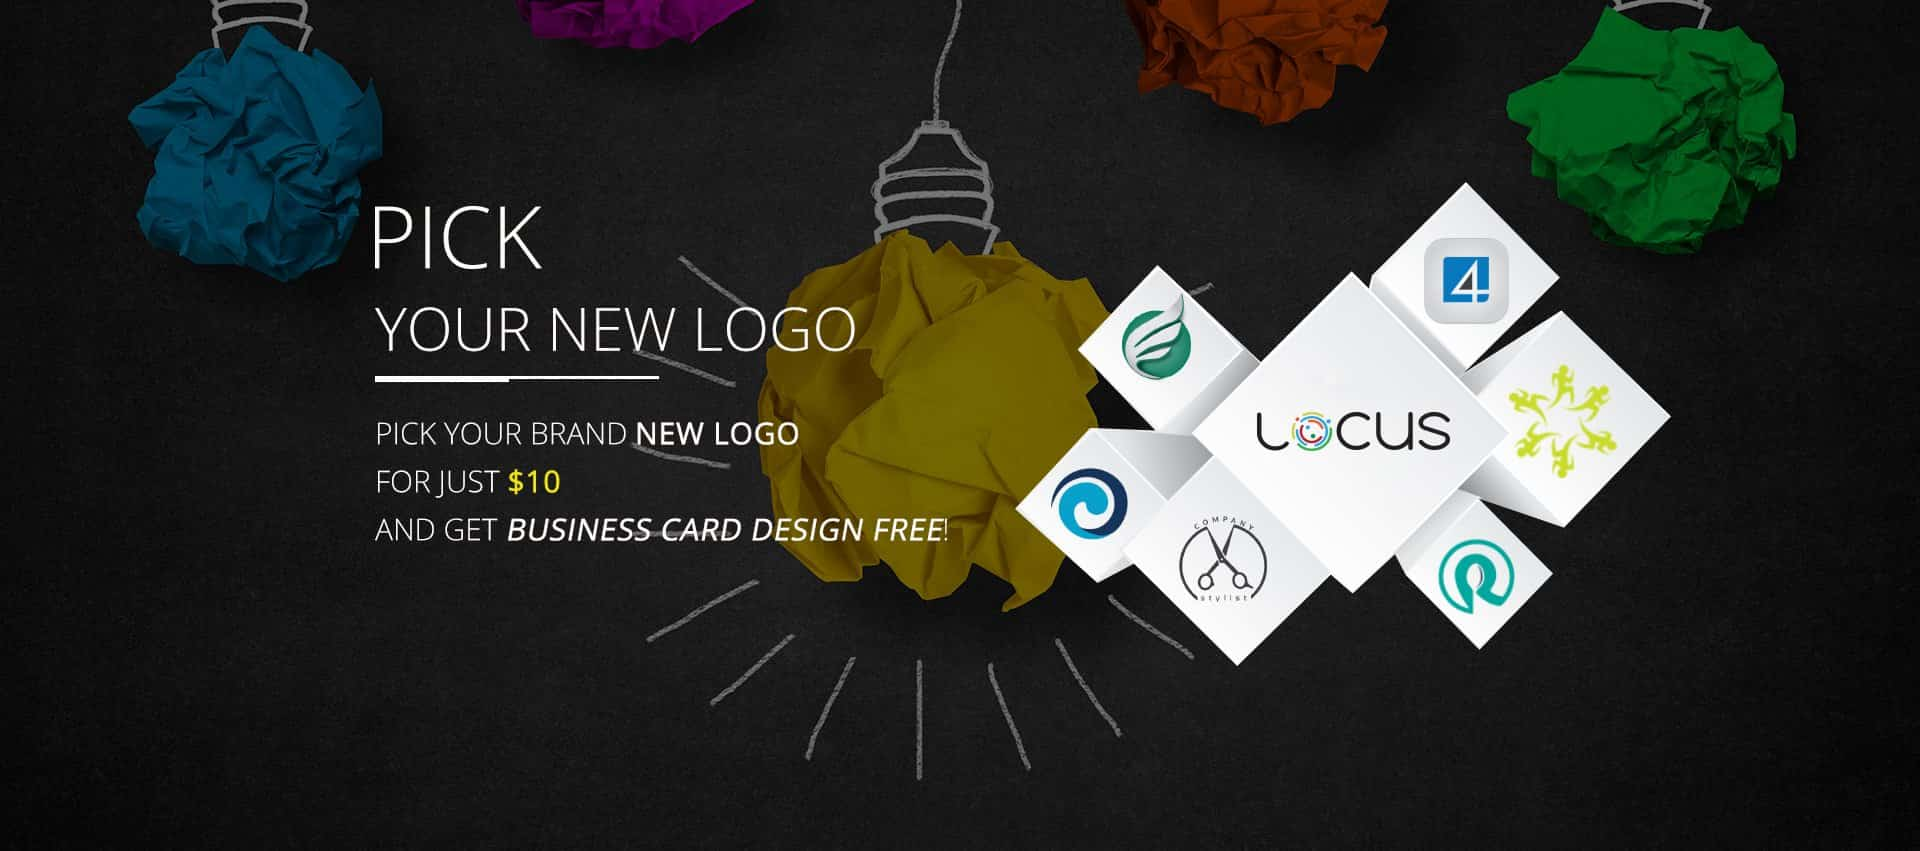 Pick Your Brand NEW LOGO